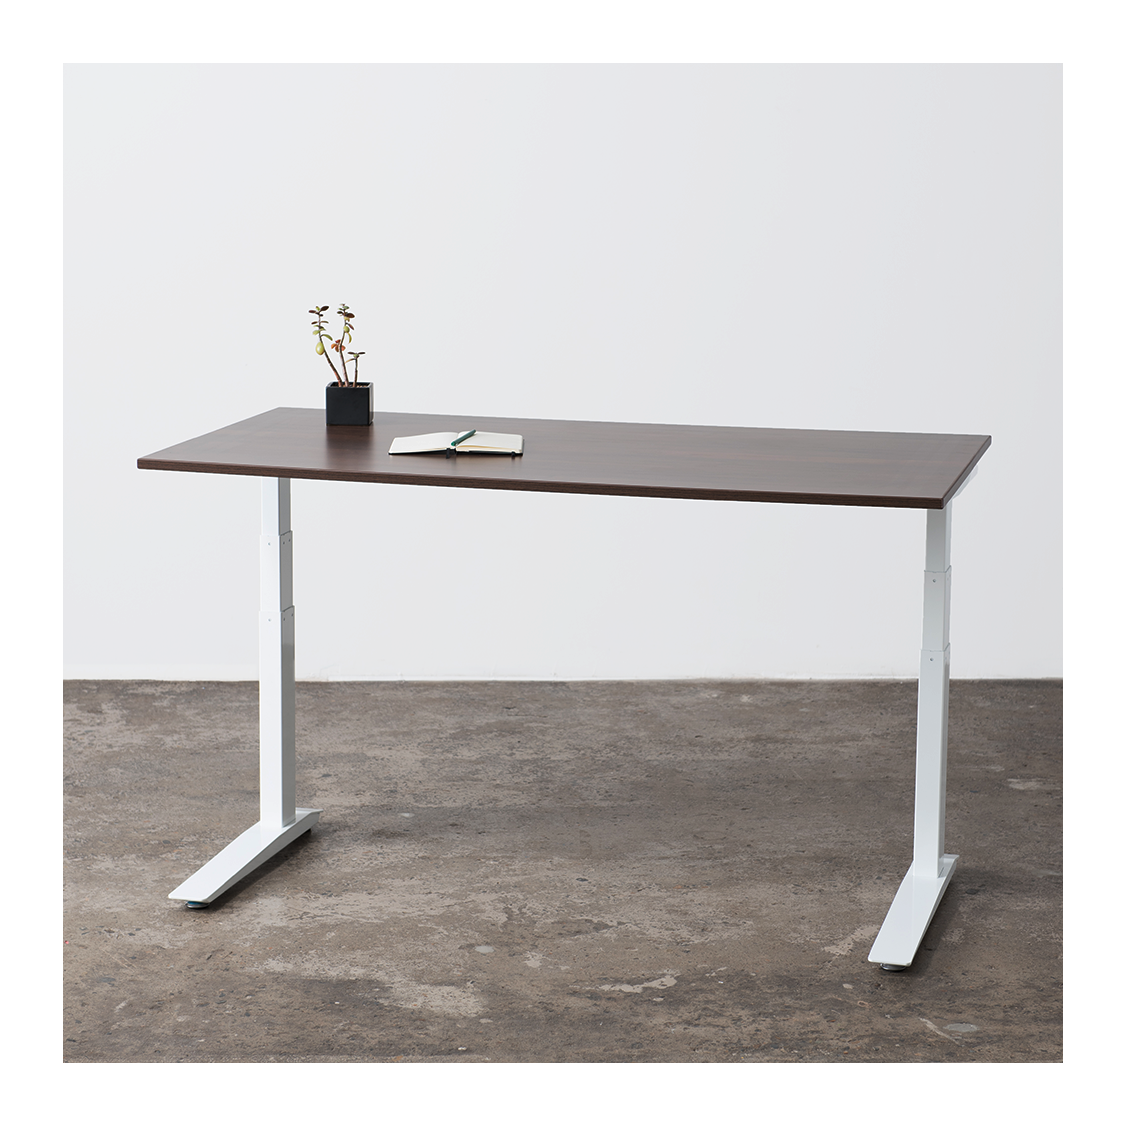 Awesome Jarvis Laminate Standing Desk Stand Desk Adjustable Download Free Architecture Designs Xaembritishbridgeorg